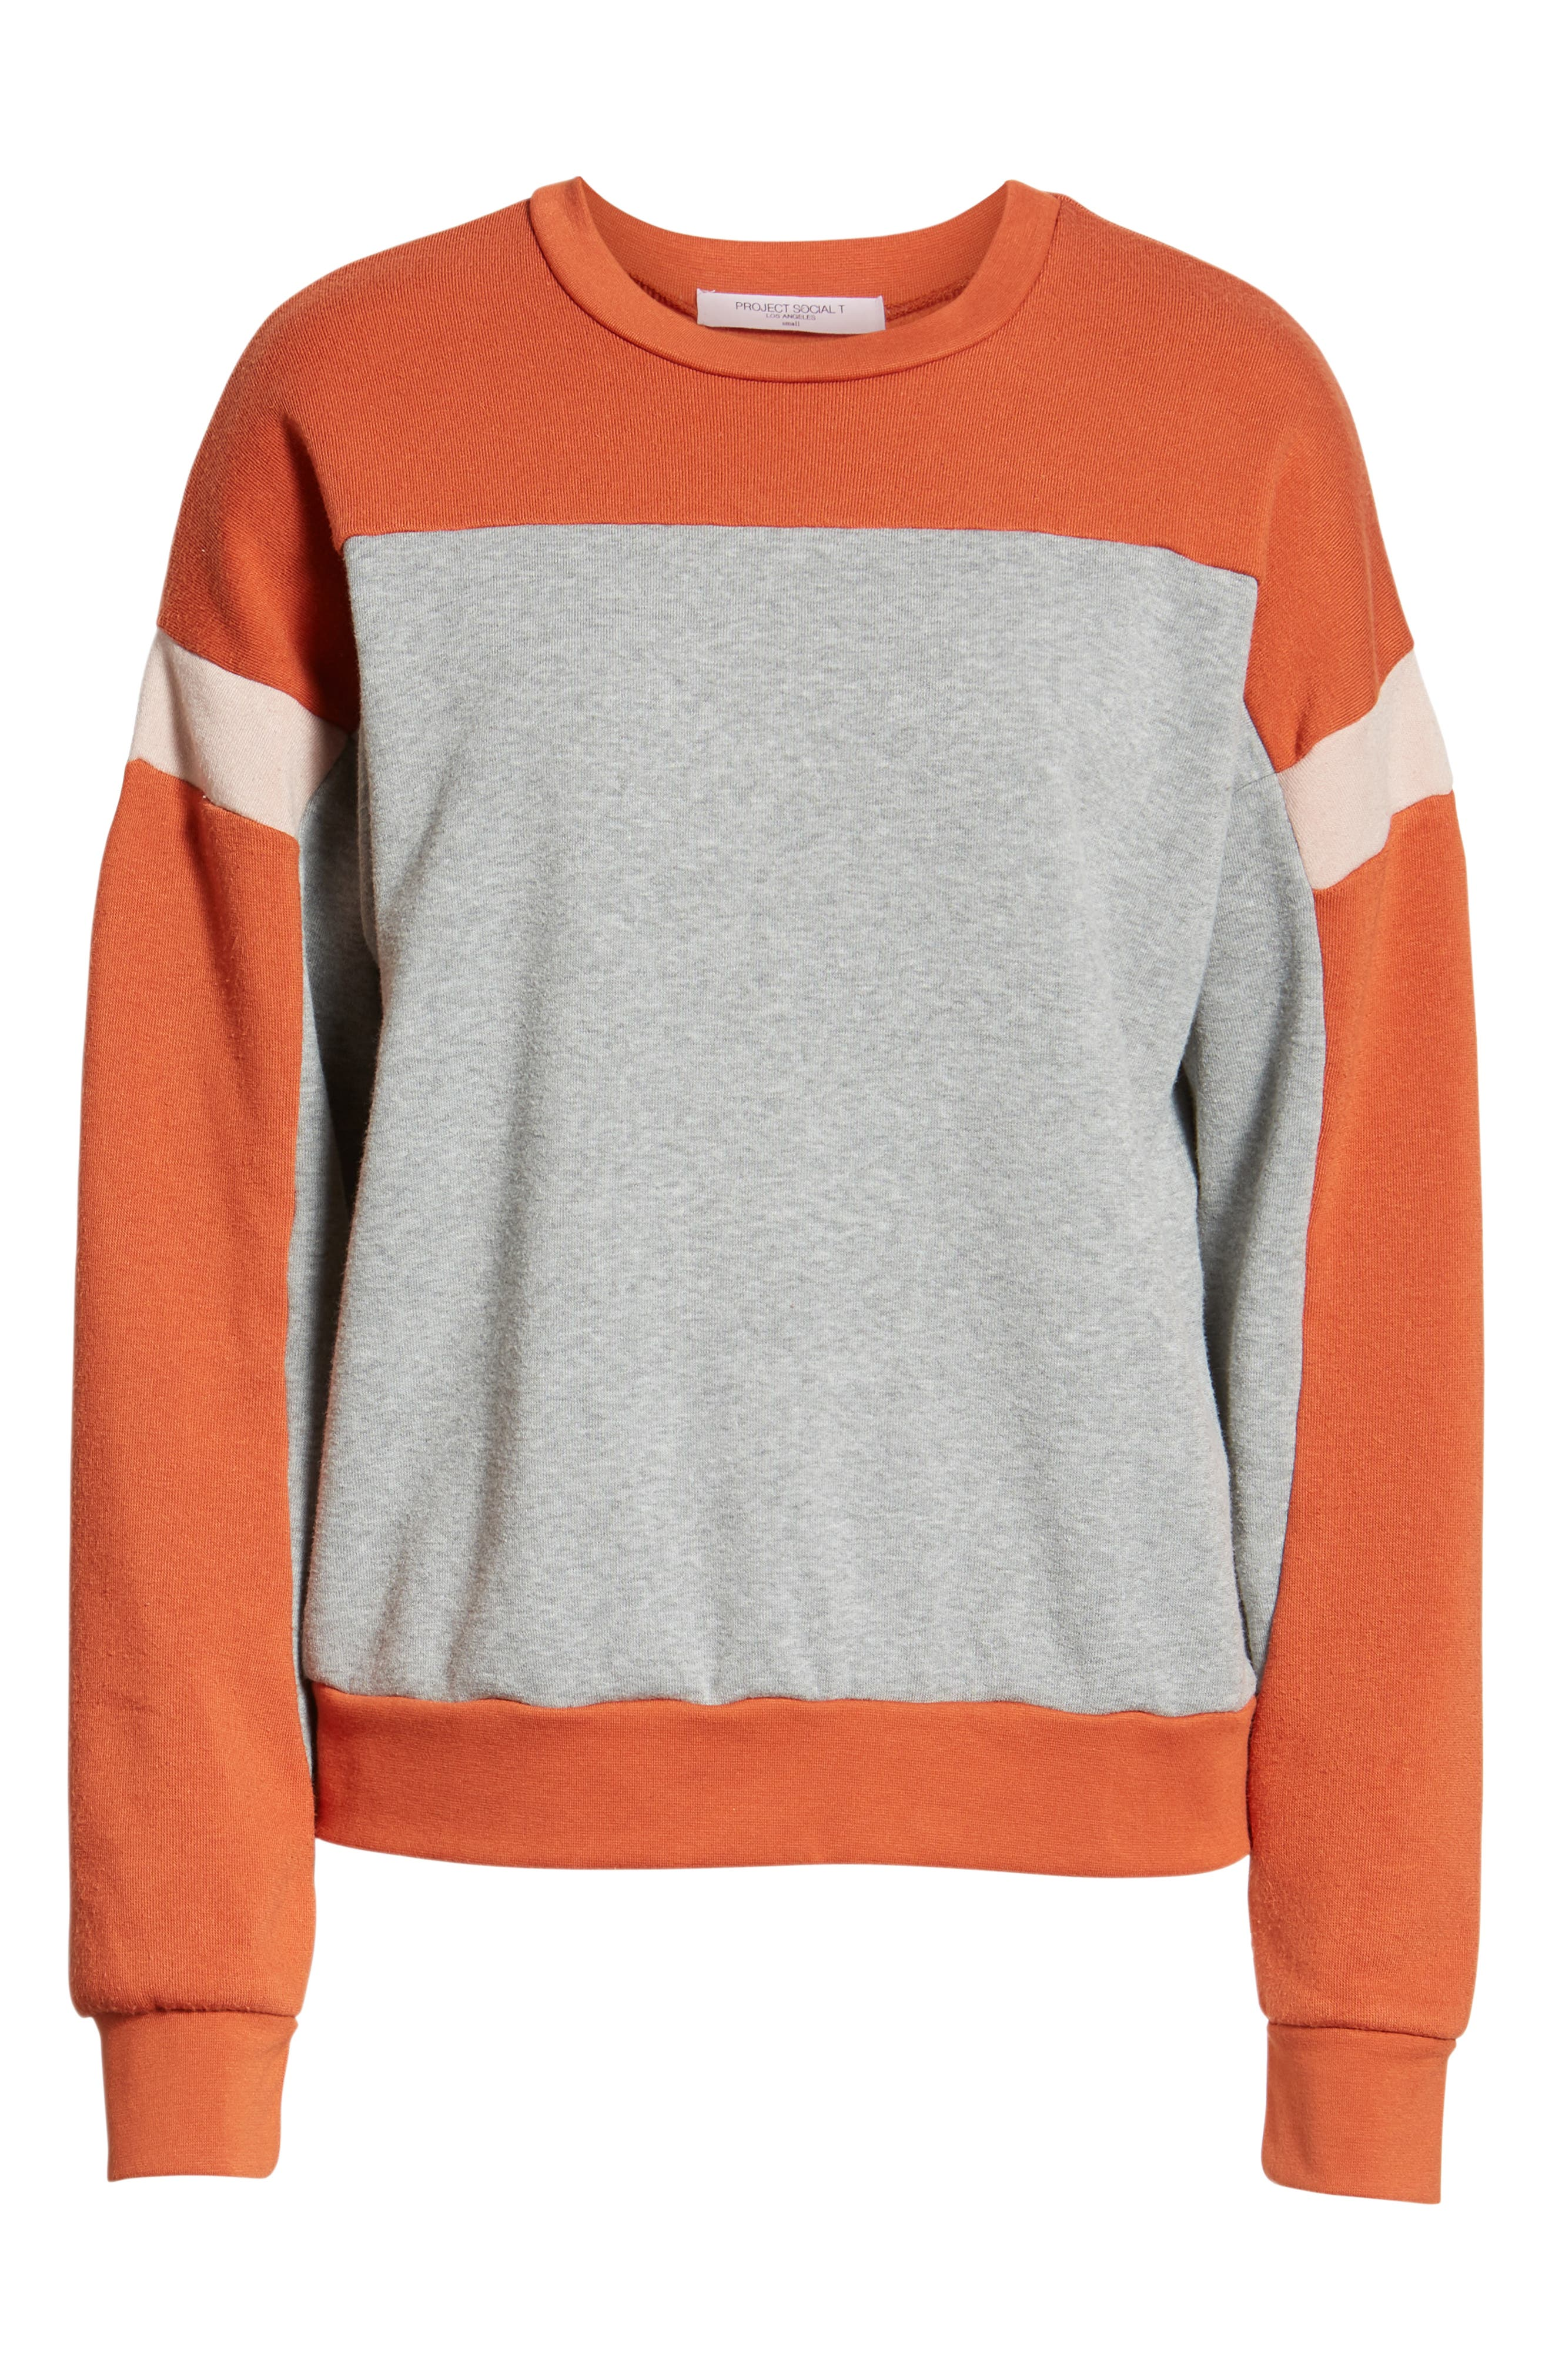 Rewind Colorblock Sweatshirt,                             Alternate thumbnail 6, color,                             HEATHER GREY/ SERRANO